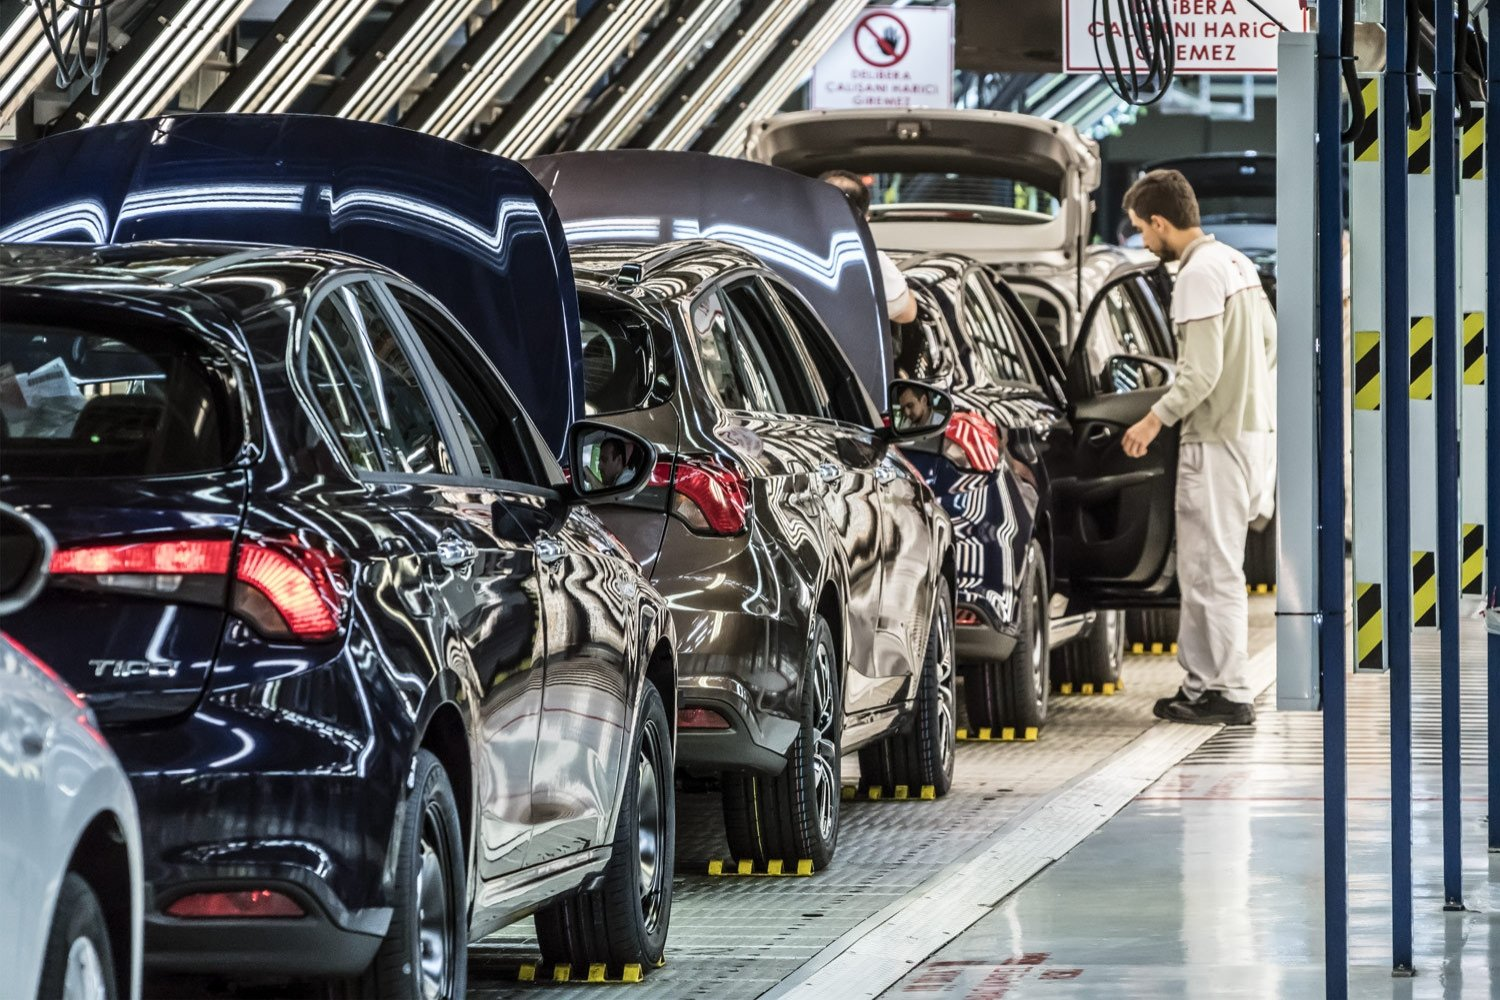 Cars are seen in the Bursa factory of Tofaş, a joint venture of Turkey's Koç Holding and Italian-American carmaker Fiat Chrysler, Oct. 30, 2018. (DHA Photo)